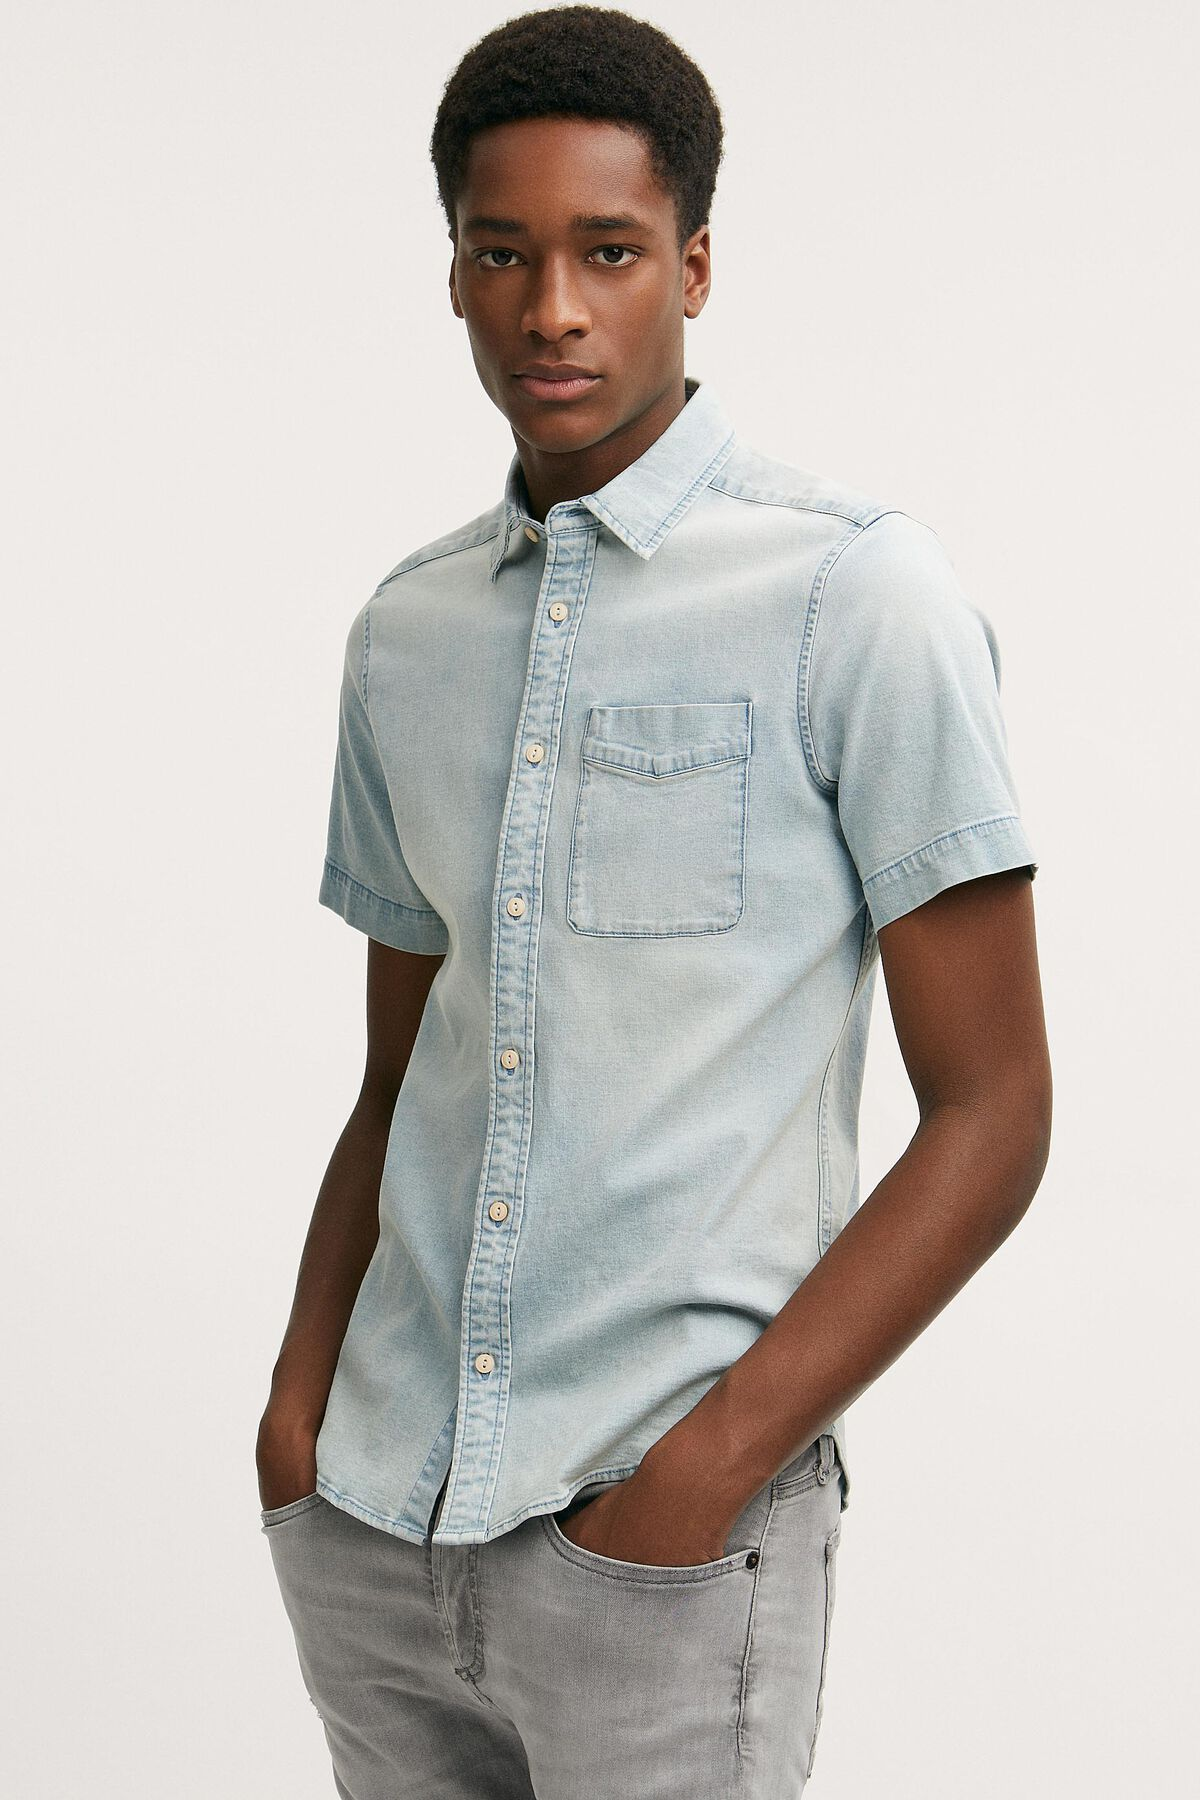 CHARLY SHIRT Heavy Stone Indigo Denim - Slim Fit